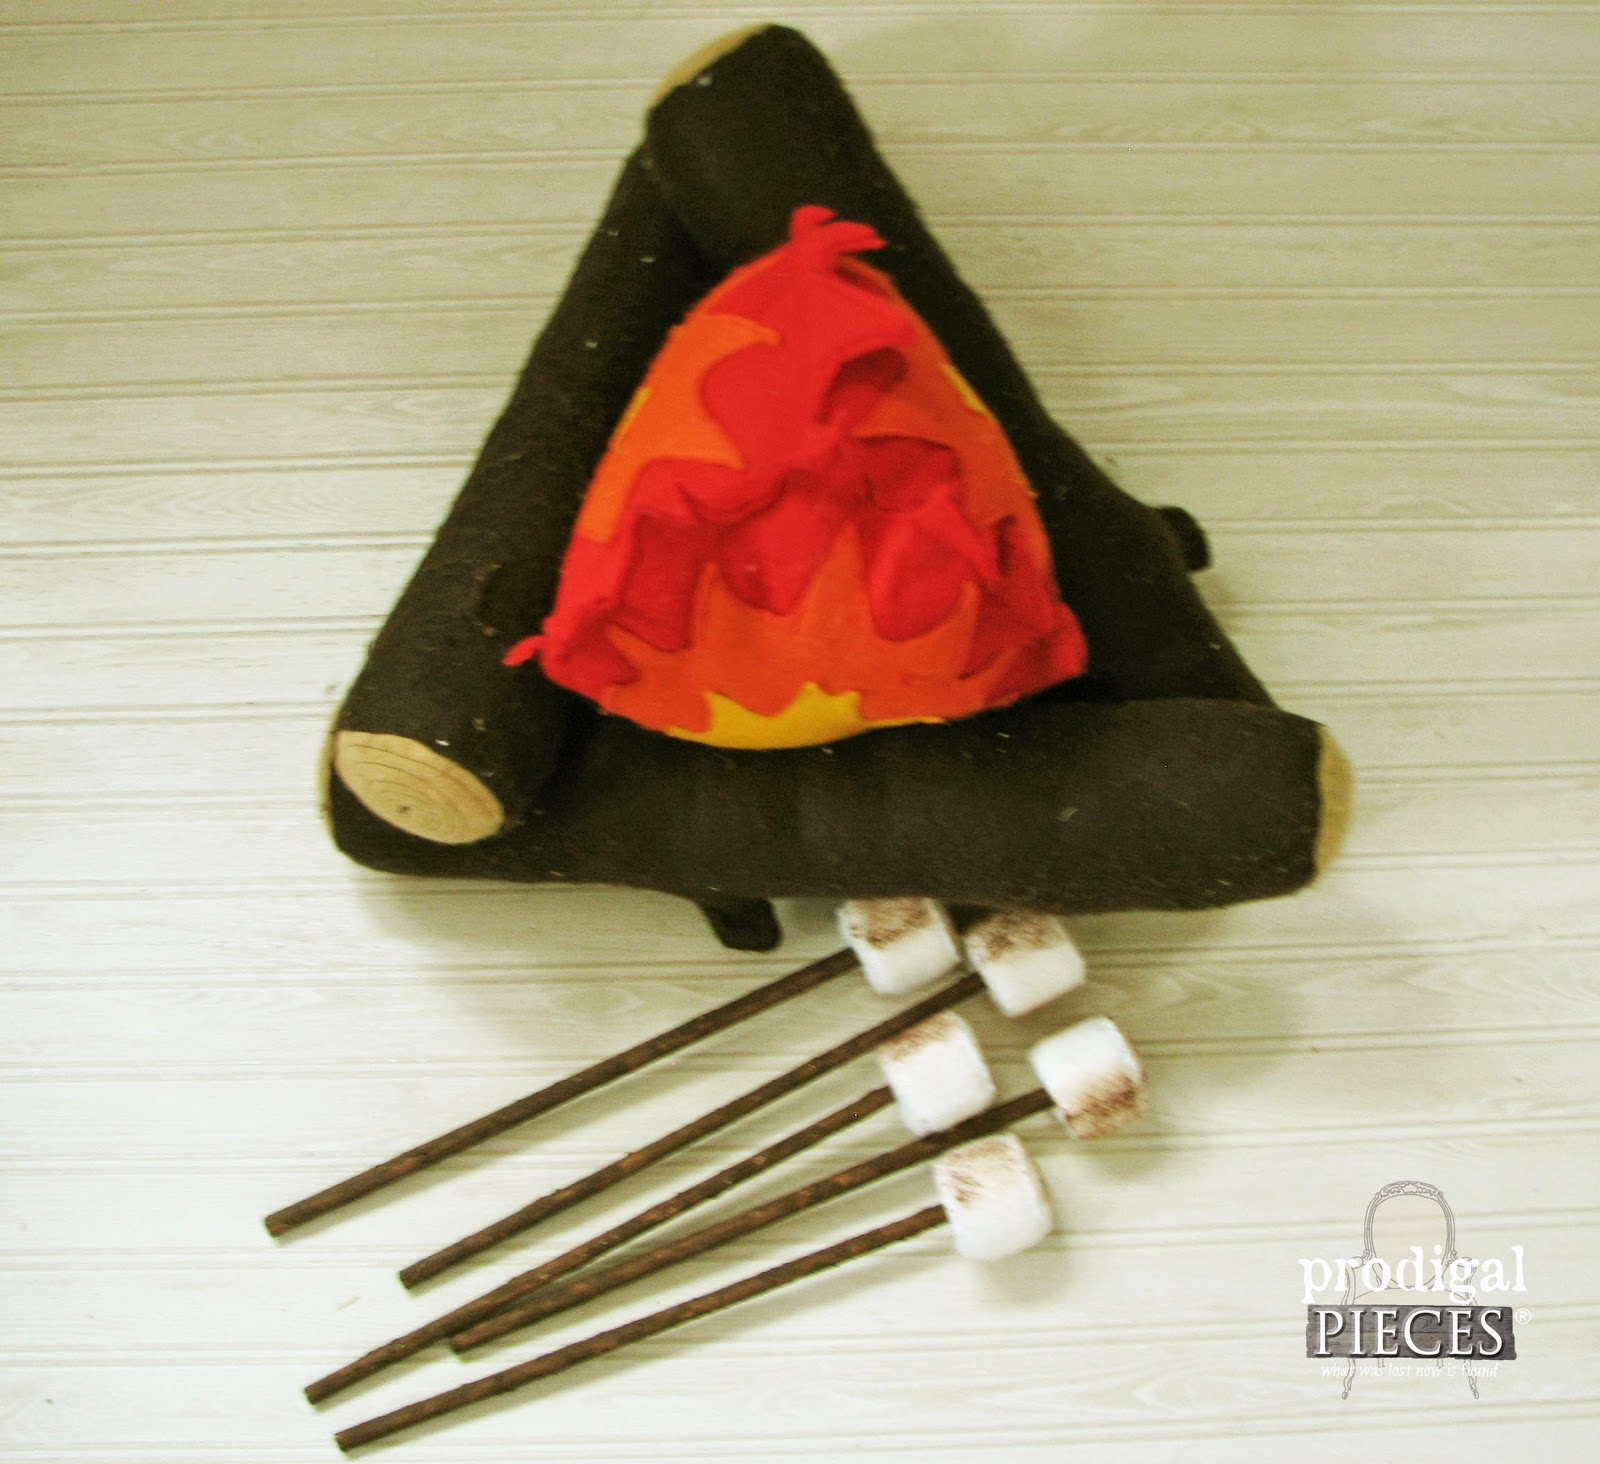 Handmade Holidays: Felt Campfire with Marshmallows Pretend Play Set by Prodigal Pieces www.prodigalpieces.com #prodigalpieces